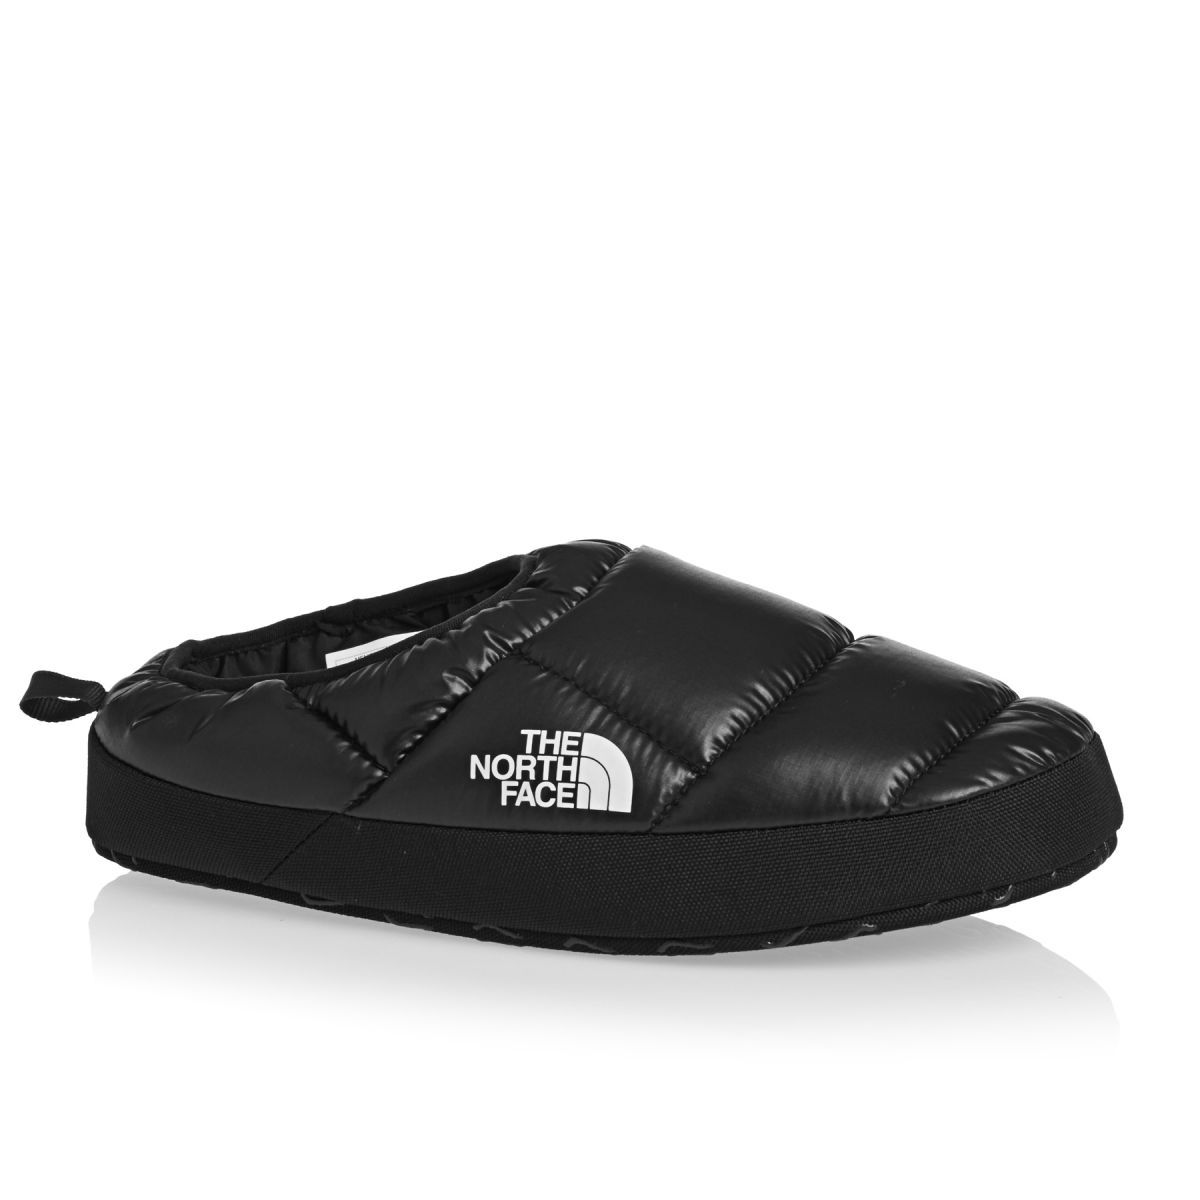 The North Face Slippers - The North Face Nuptse Tent Mule III Slippers - Shiny Black  sc 1 st  Pinterest : nuptse tent mule - memphite.com